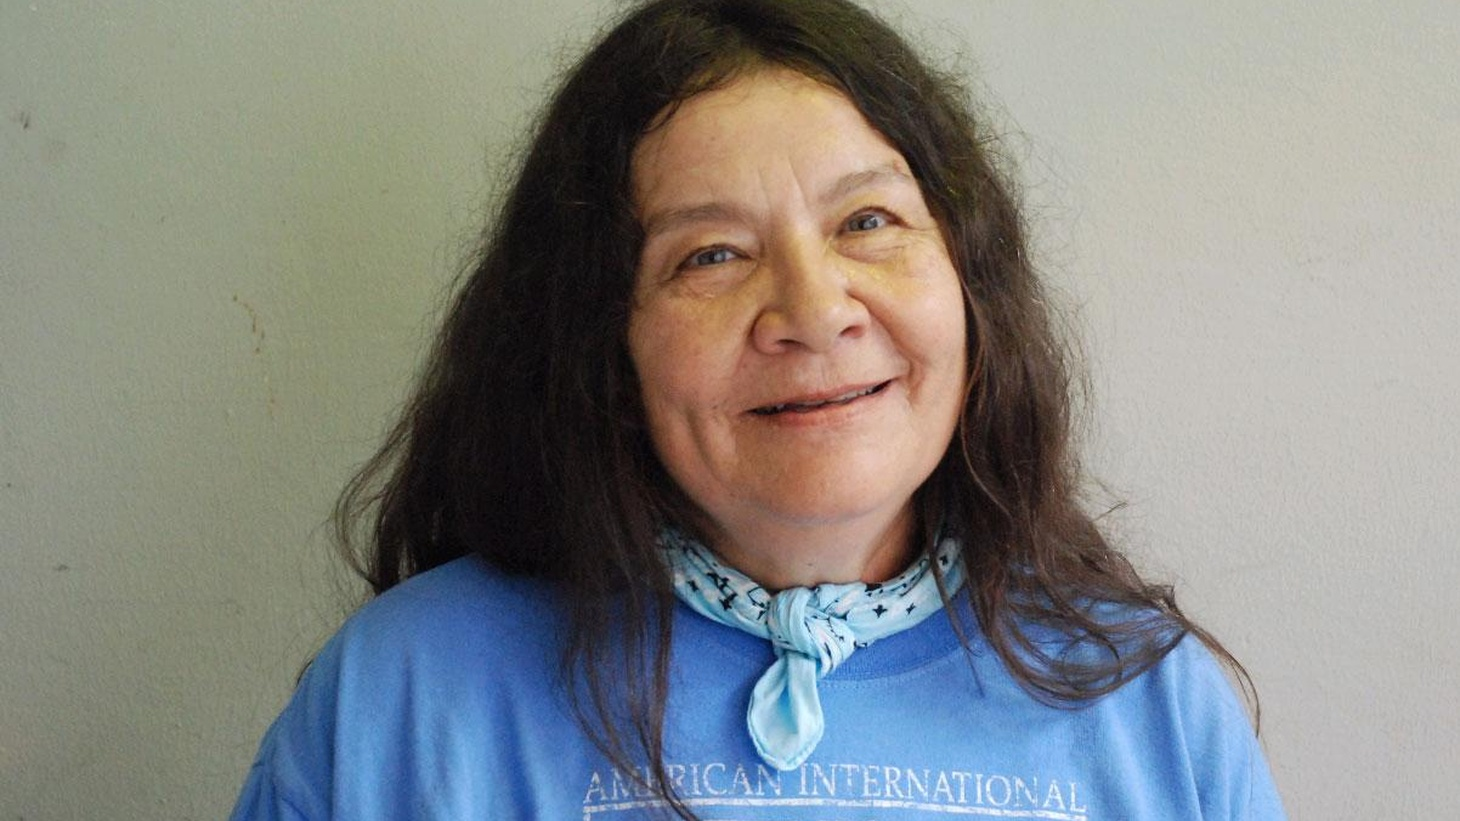 The Turquoise Ledge: A Memoir ( Viking)  The Sonoran desert, its creatures and features, its ants and plants, becomes the classroom for that most trans-human of lessons. Poet, novelist and essayist Leslie Marmon Silko provides a memoir of her education outdoors.